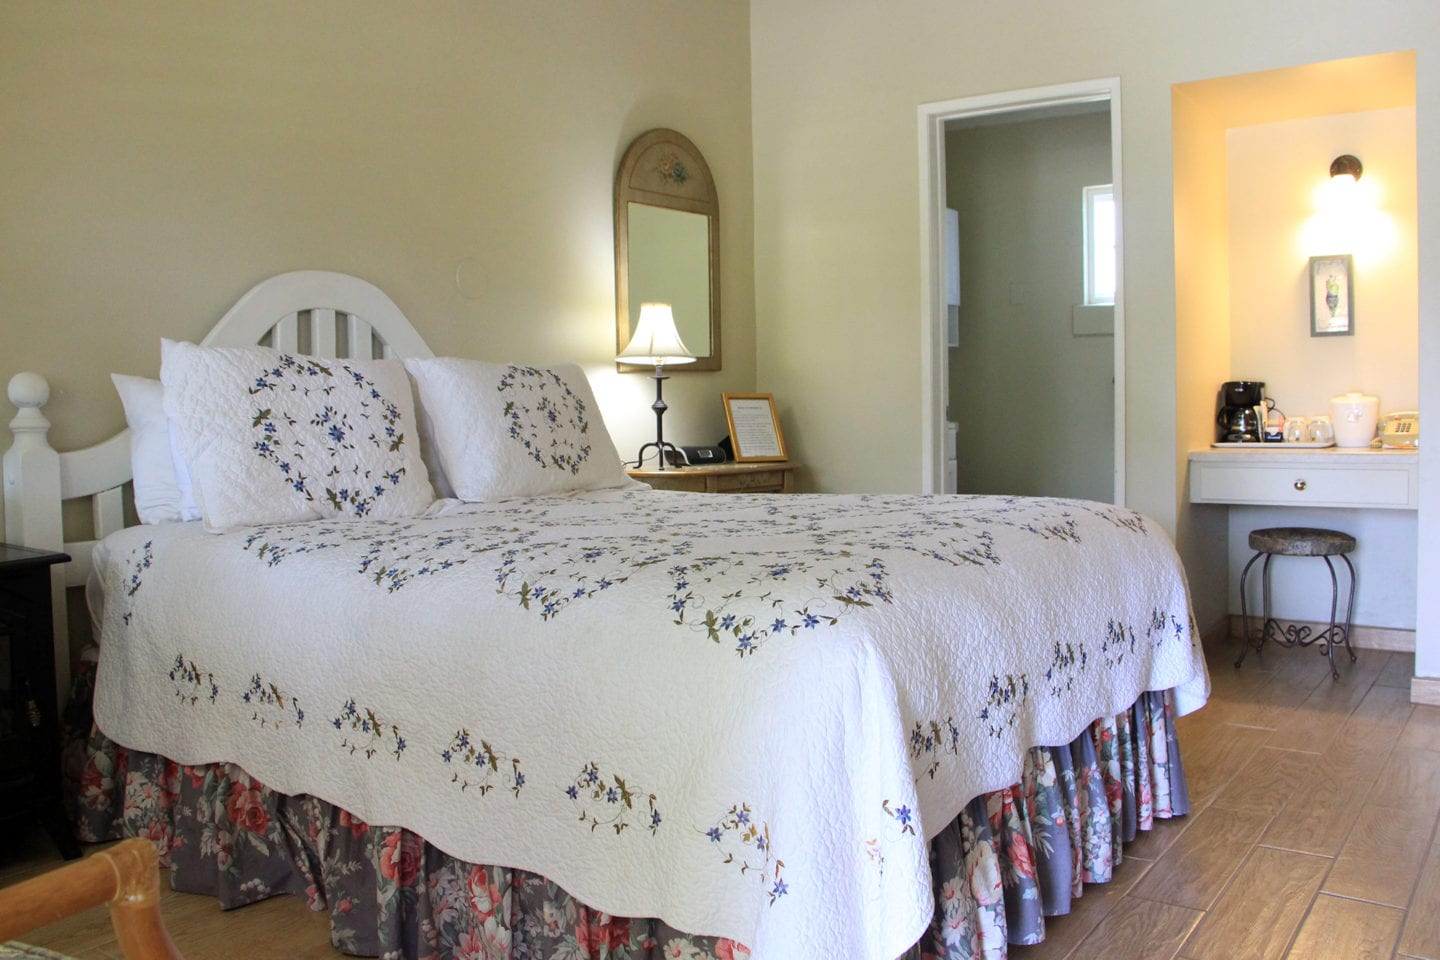 Guest room at the Meadowlark Inn